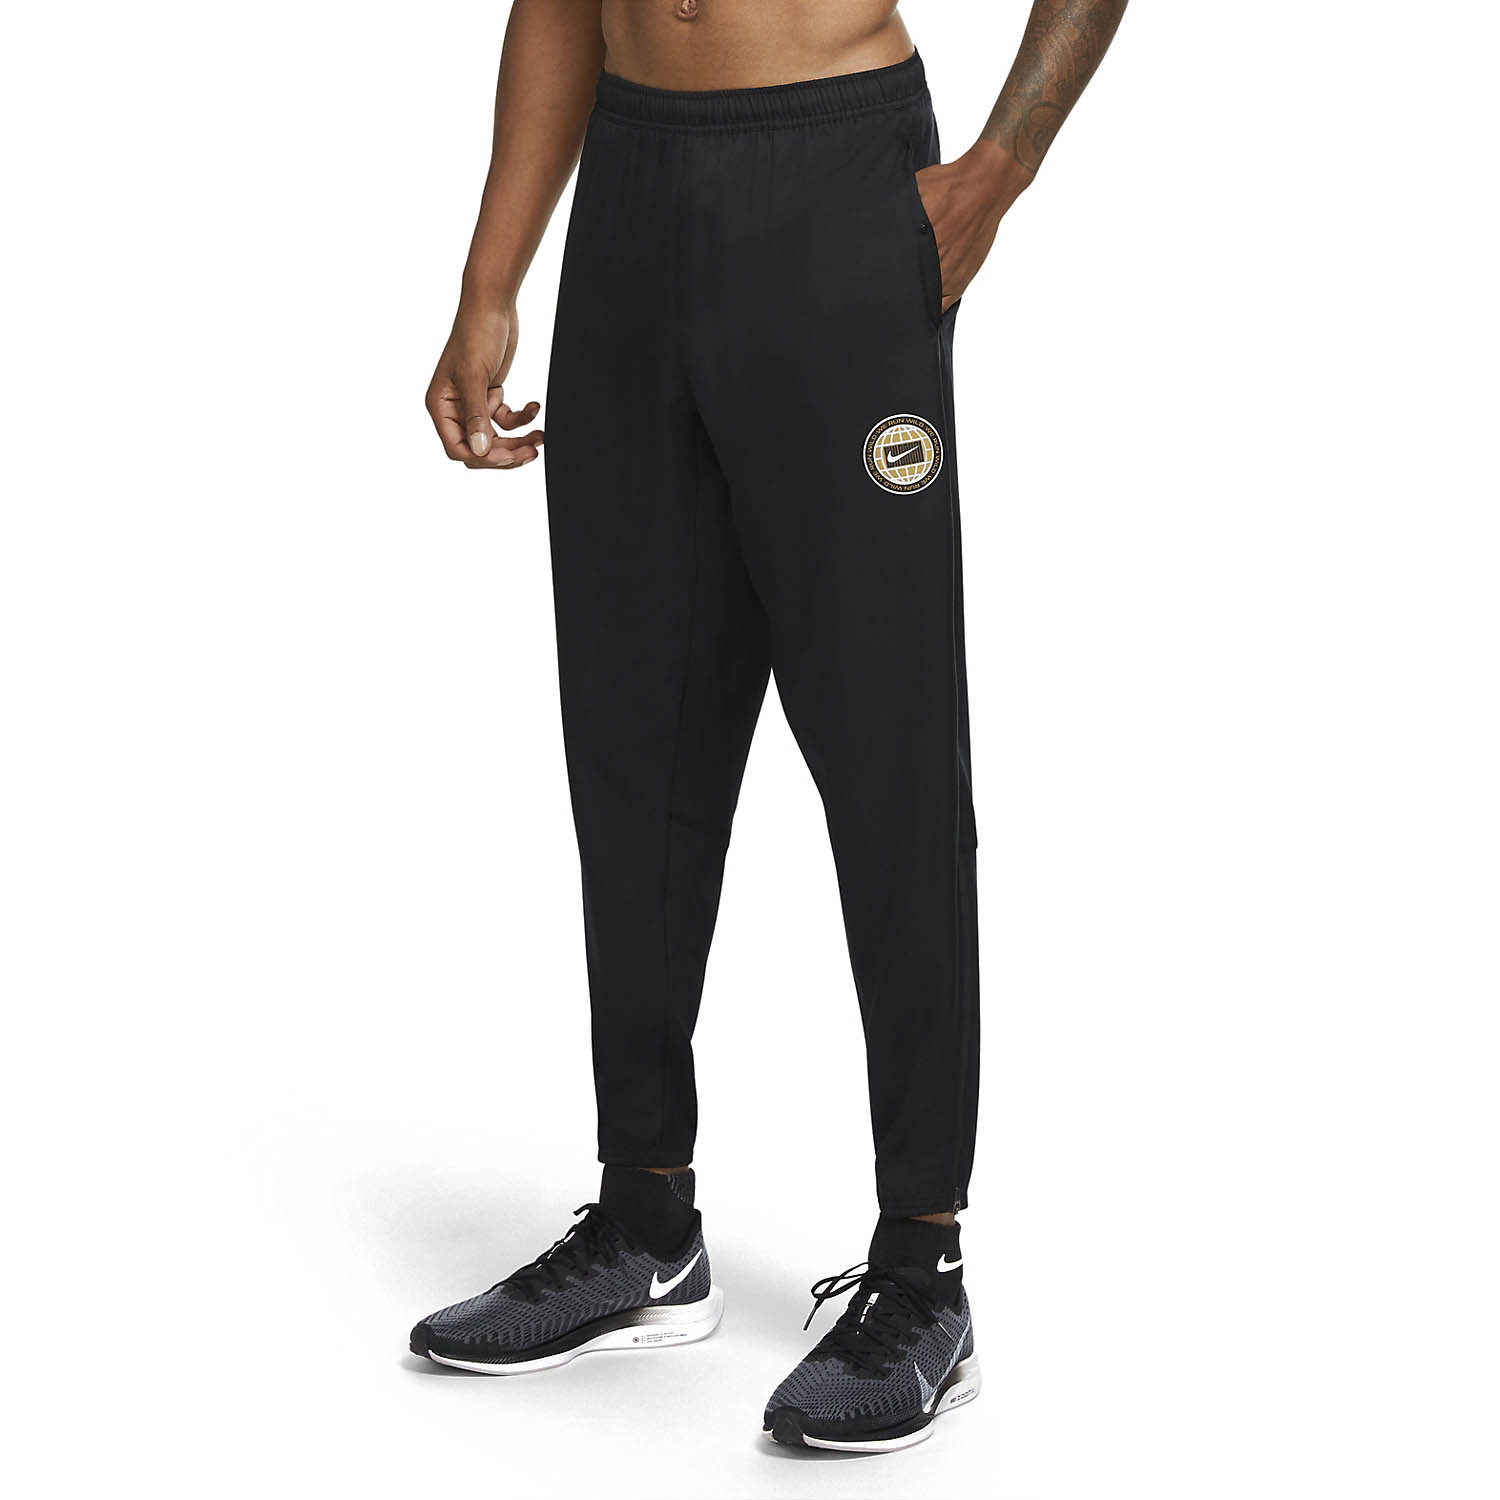 Nike Essential Wild Run Pants - Black/Particle Grey/Reflective Silver